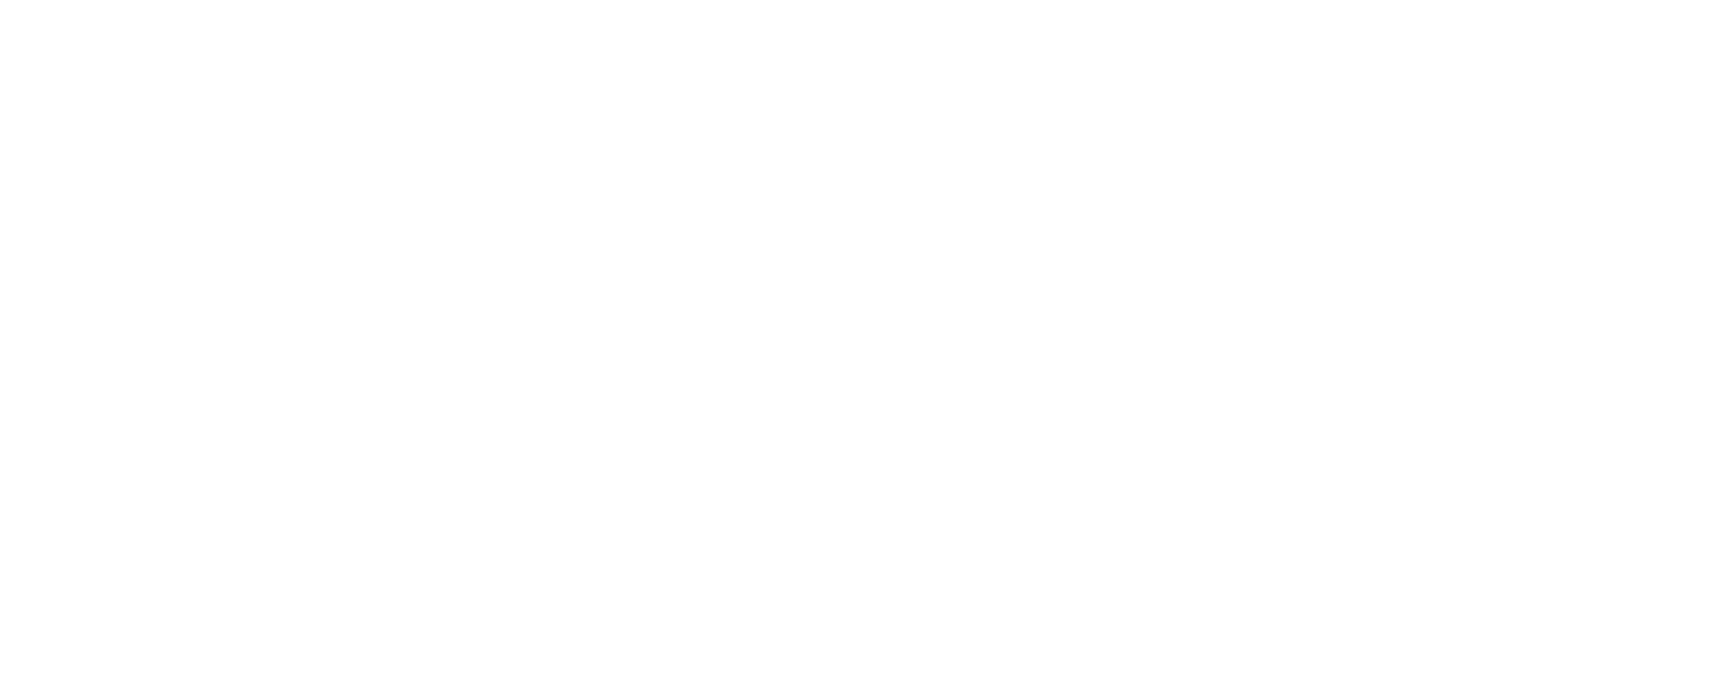 Riggs Showroom Distributing